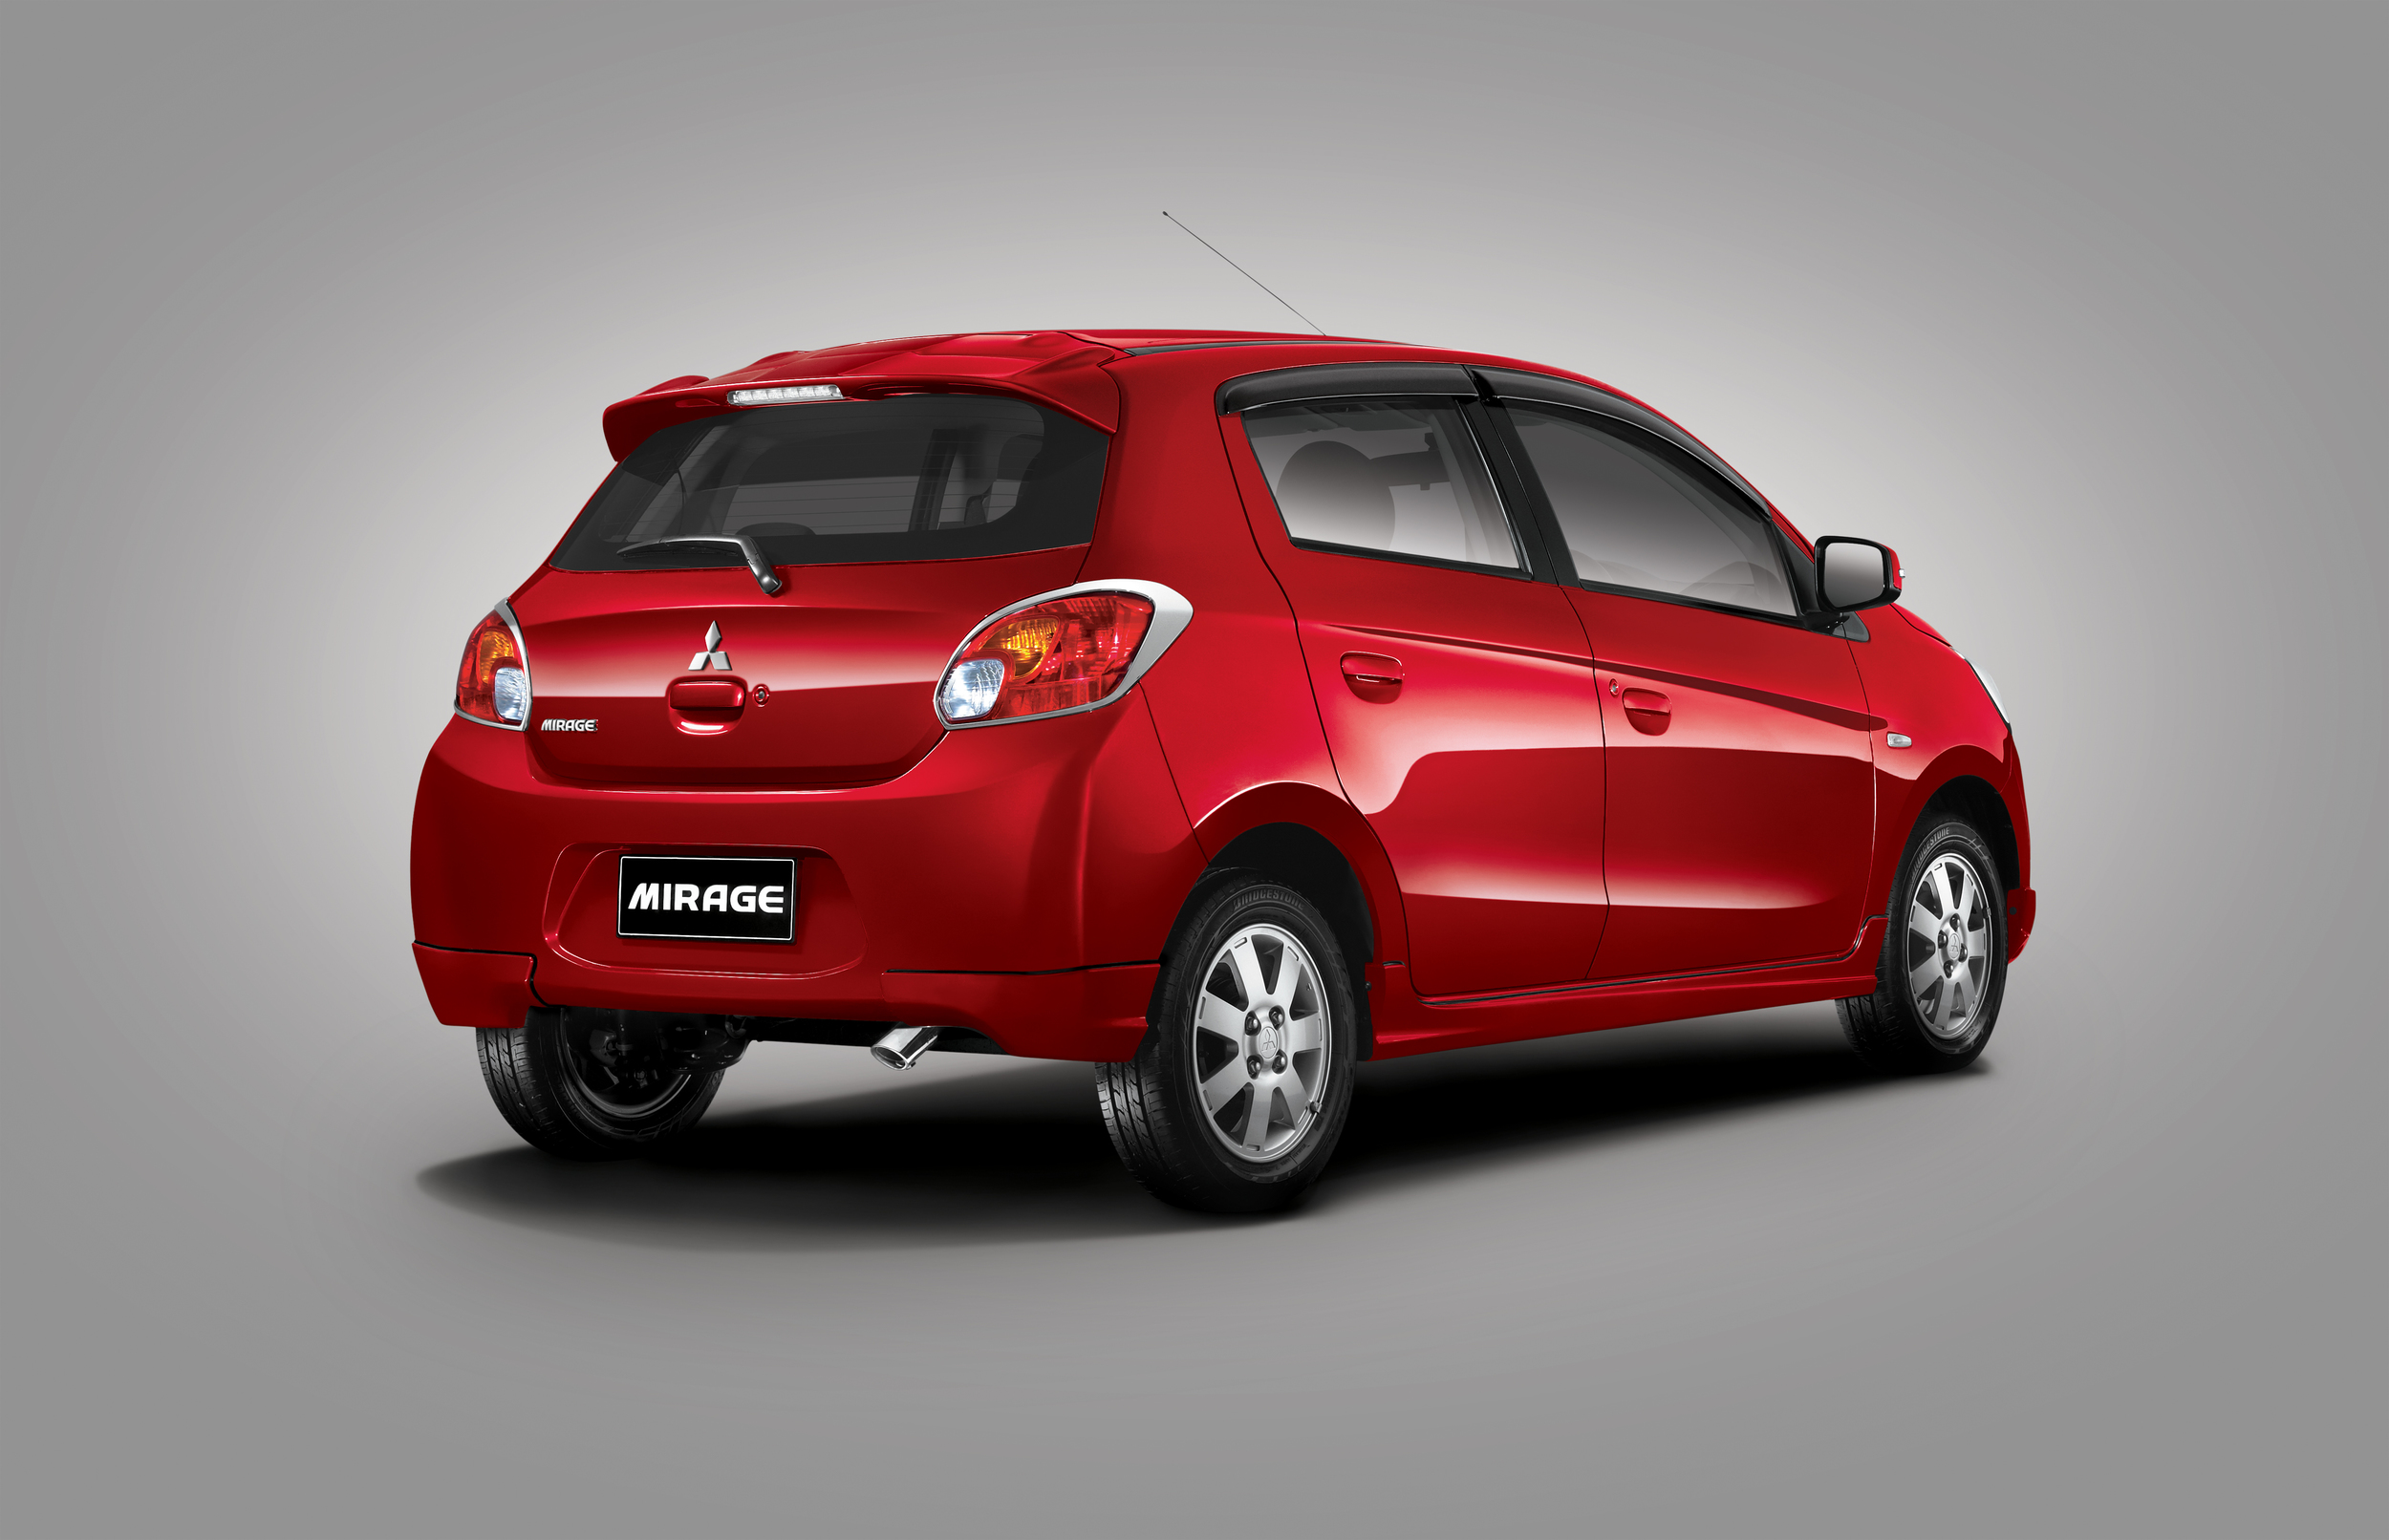 MITSUBISHI mirage belakang RED FINAL.jpg